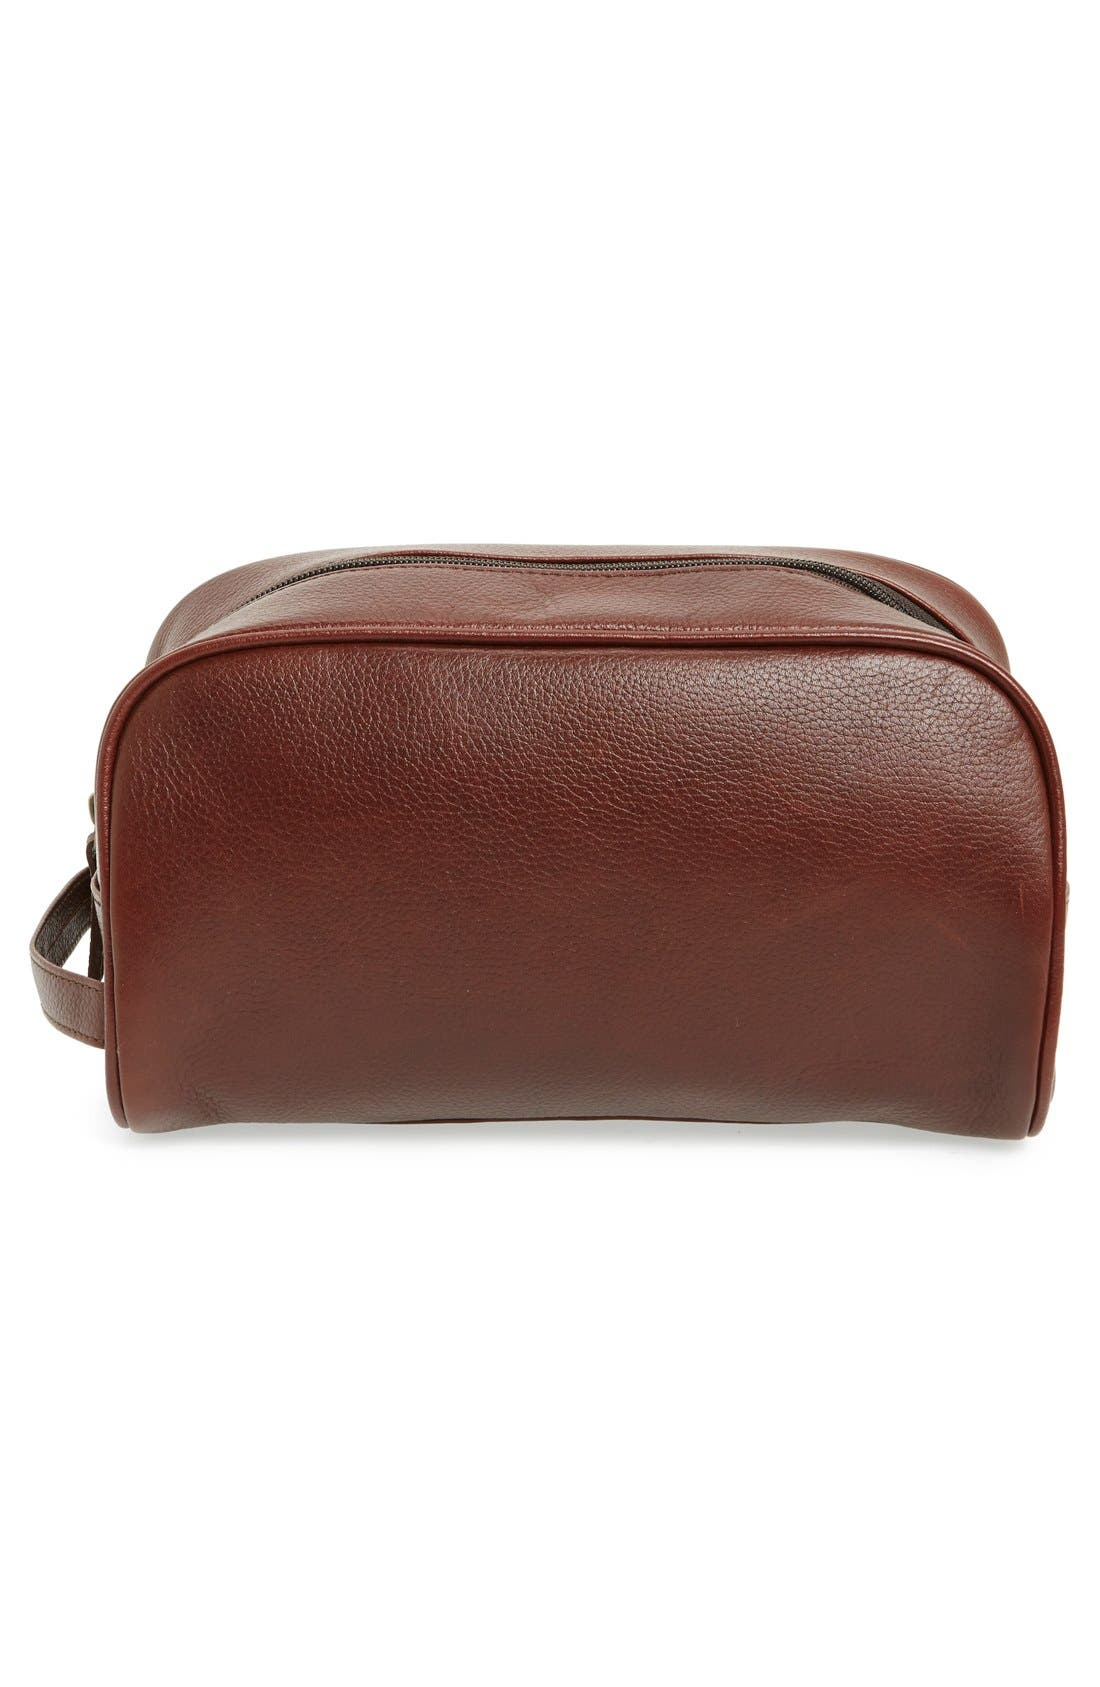 BARBOUR, Leather Travel Kit, Alternate thumbnail 4, color, DARK BROWN